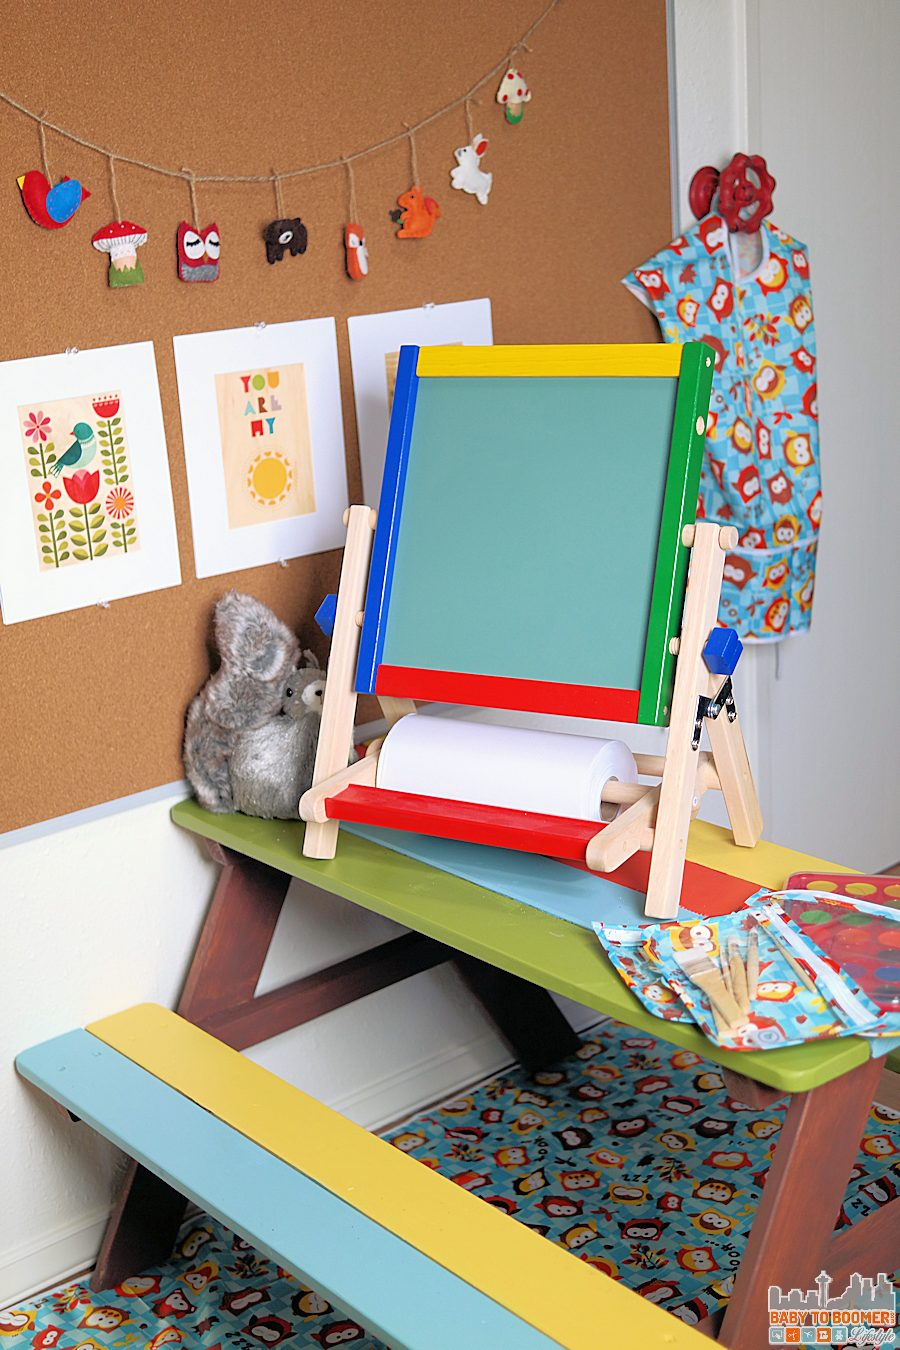 Kids Room Ideas: Creating a Place for Art in the Playroom